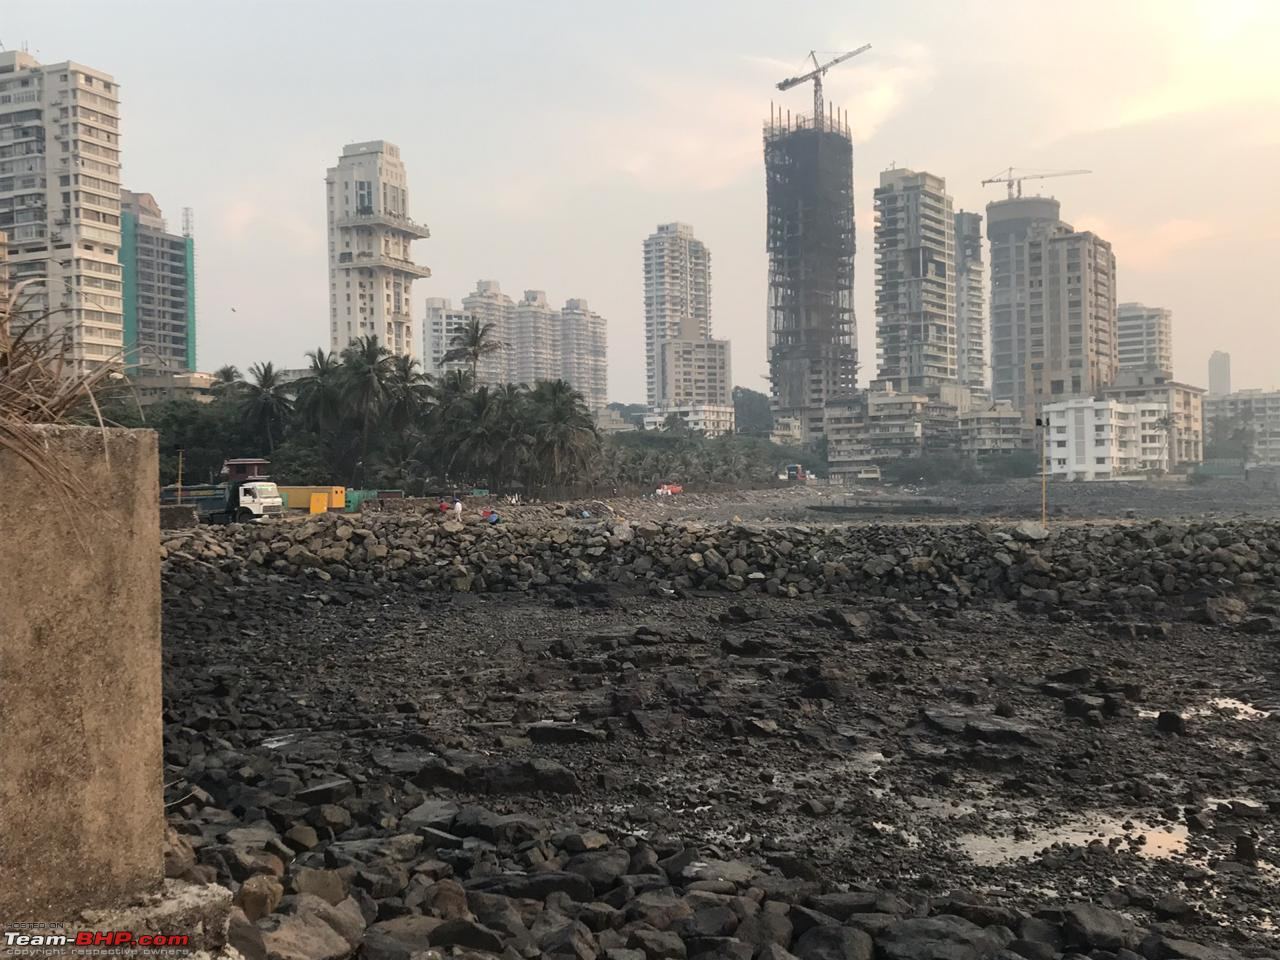 Mumbai's Rs 1400 crore coastal road project halted for want of proper environmental clearance